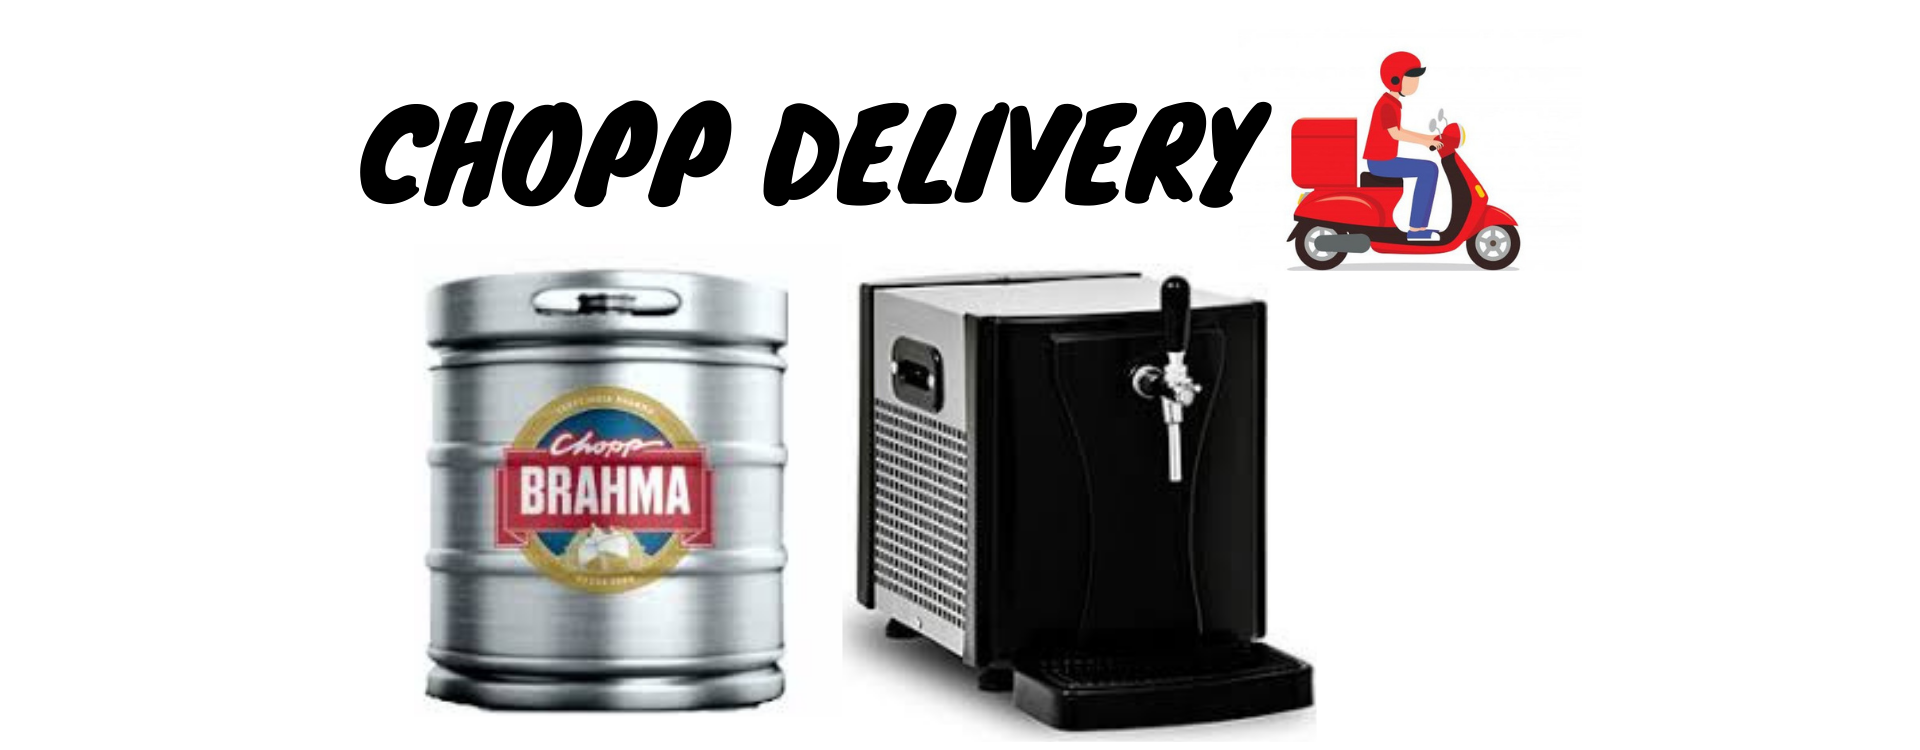 chopp delivery SITE